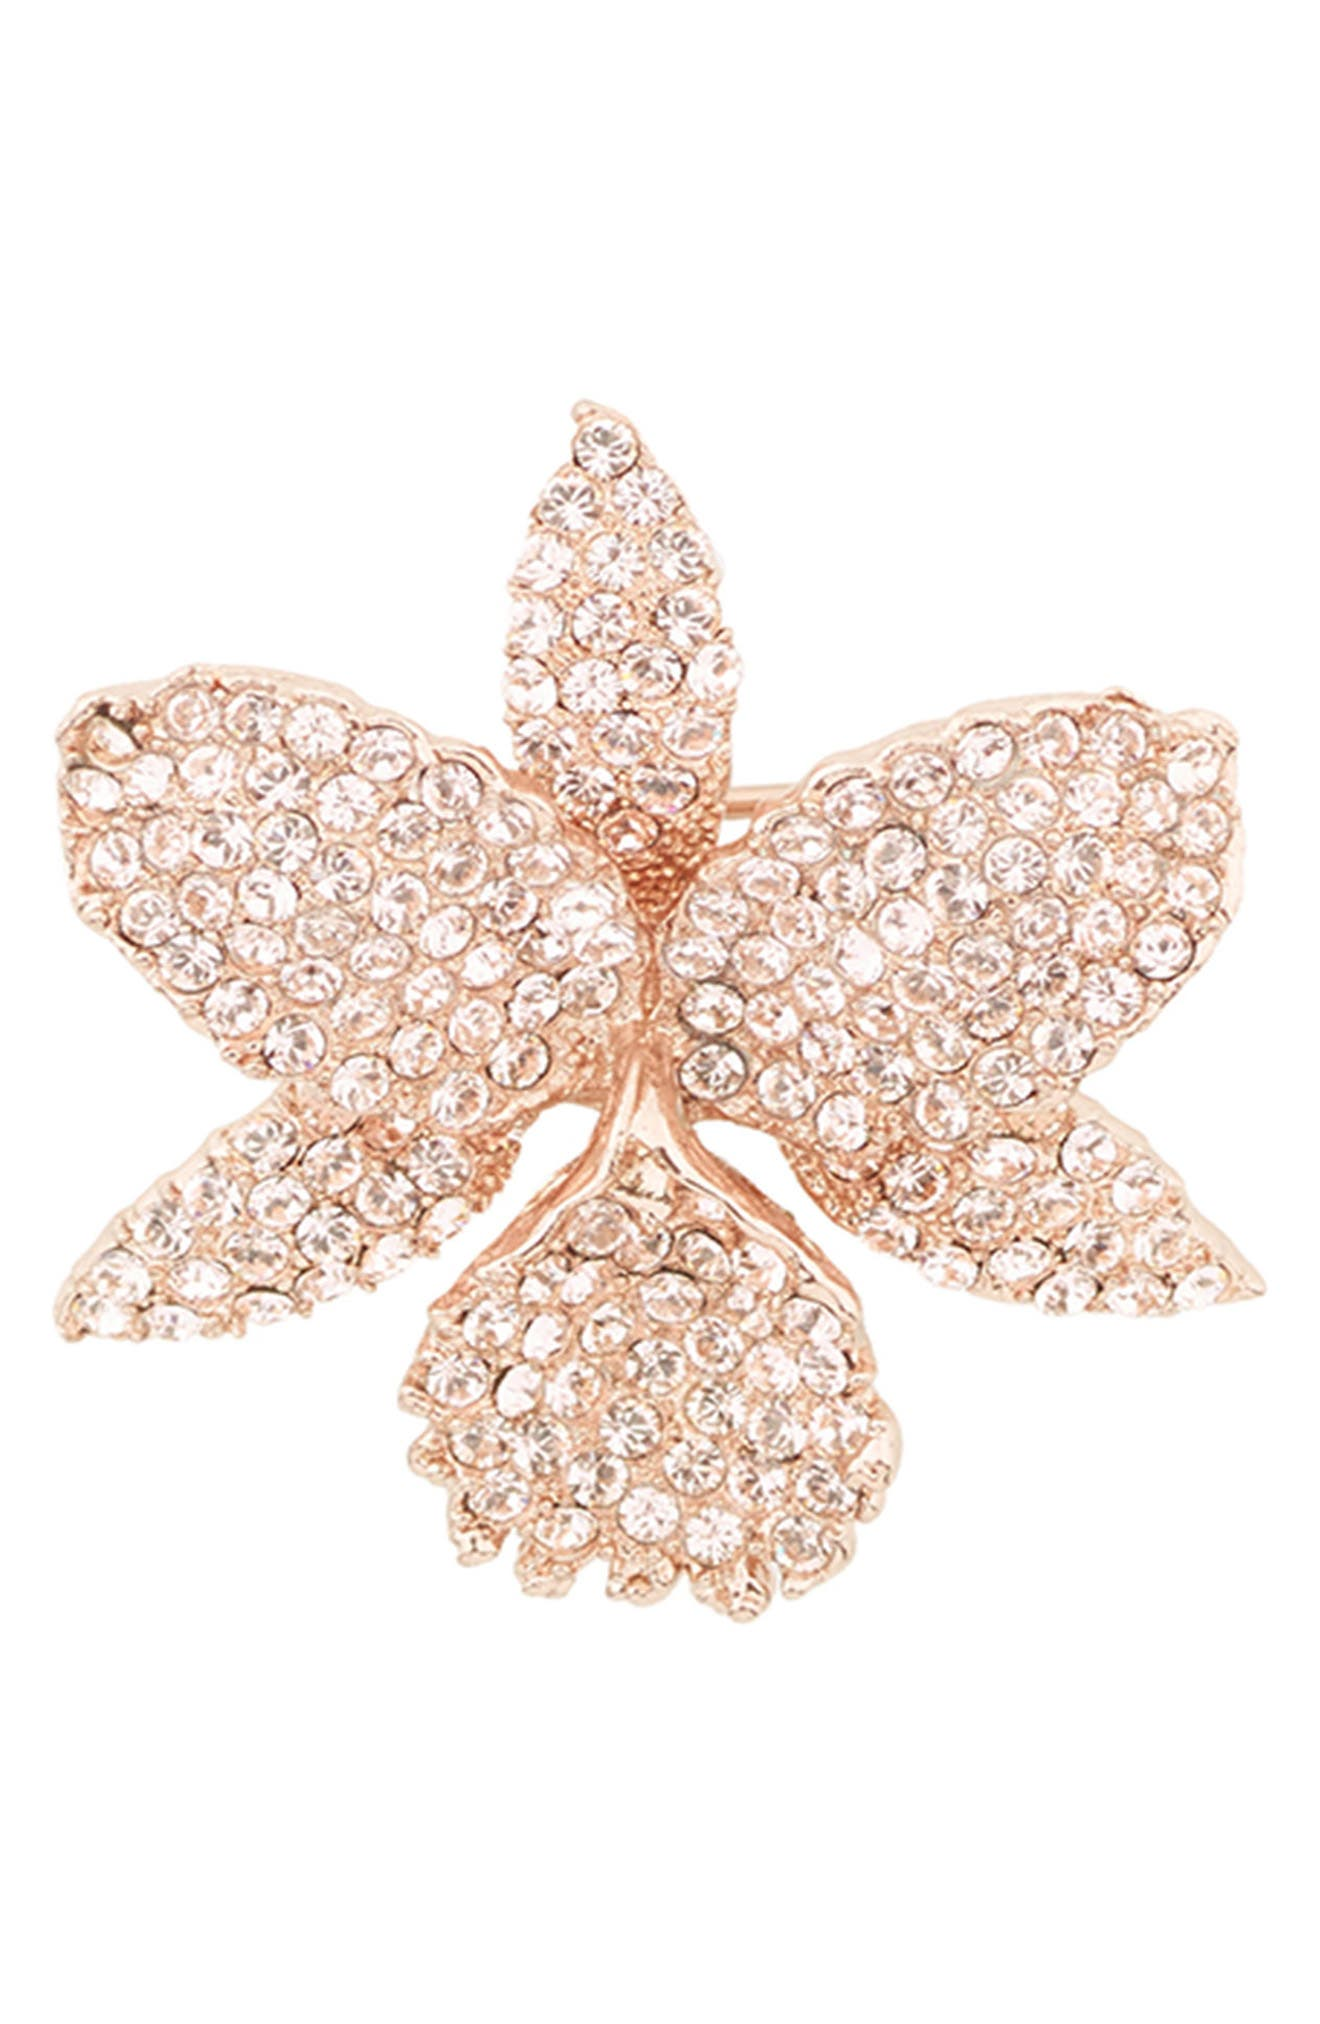 Orchid Swarovski Crystal Pin,                             Main thumbnail 1, color,                             650